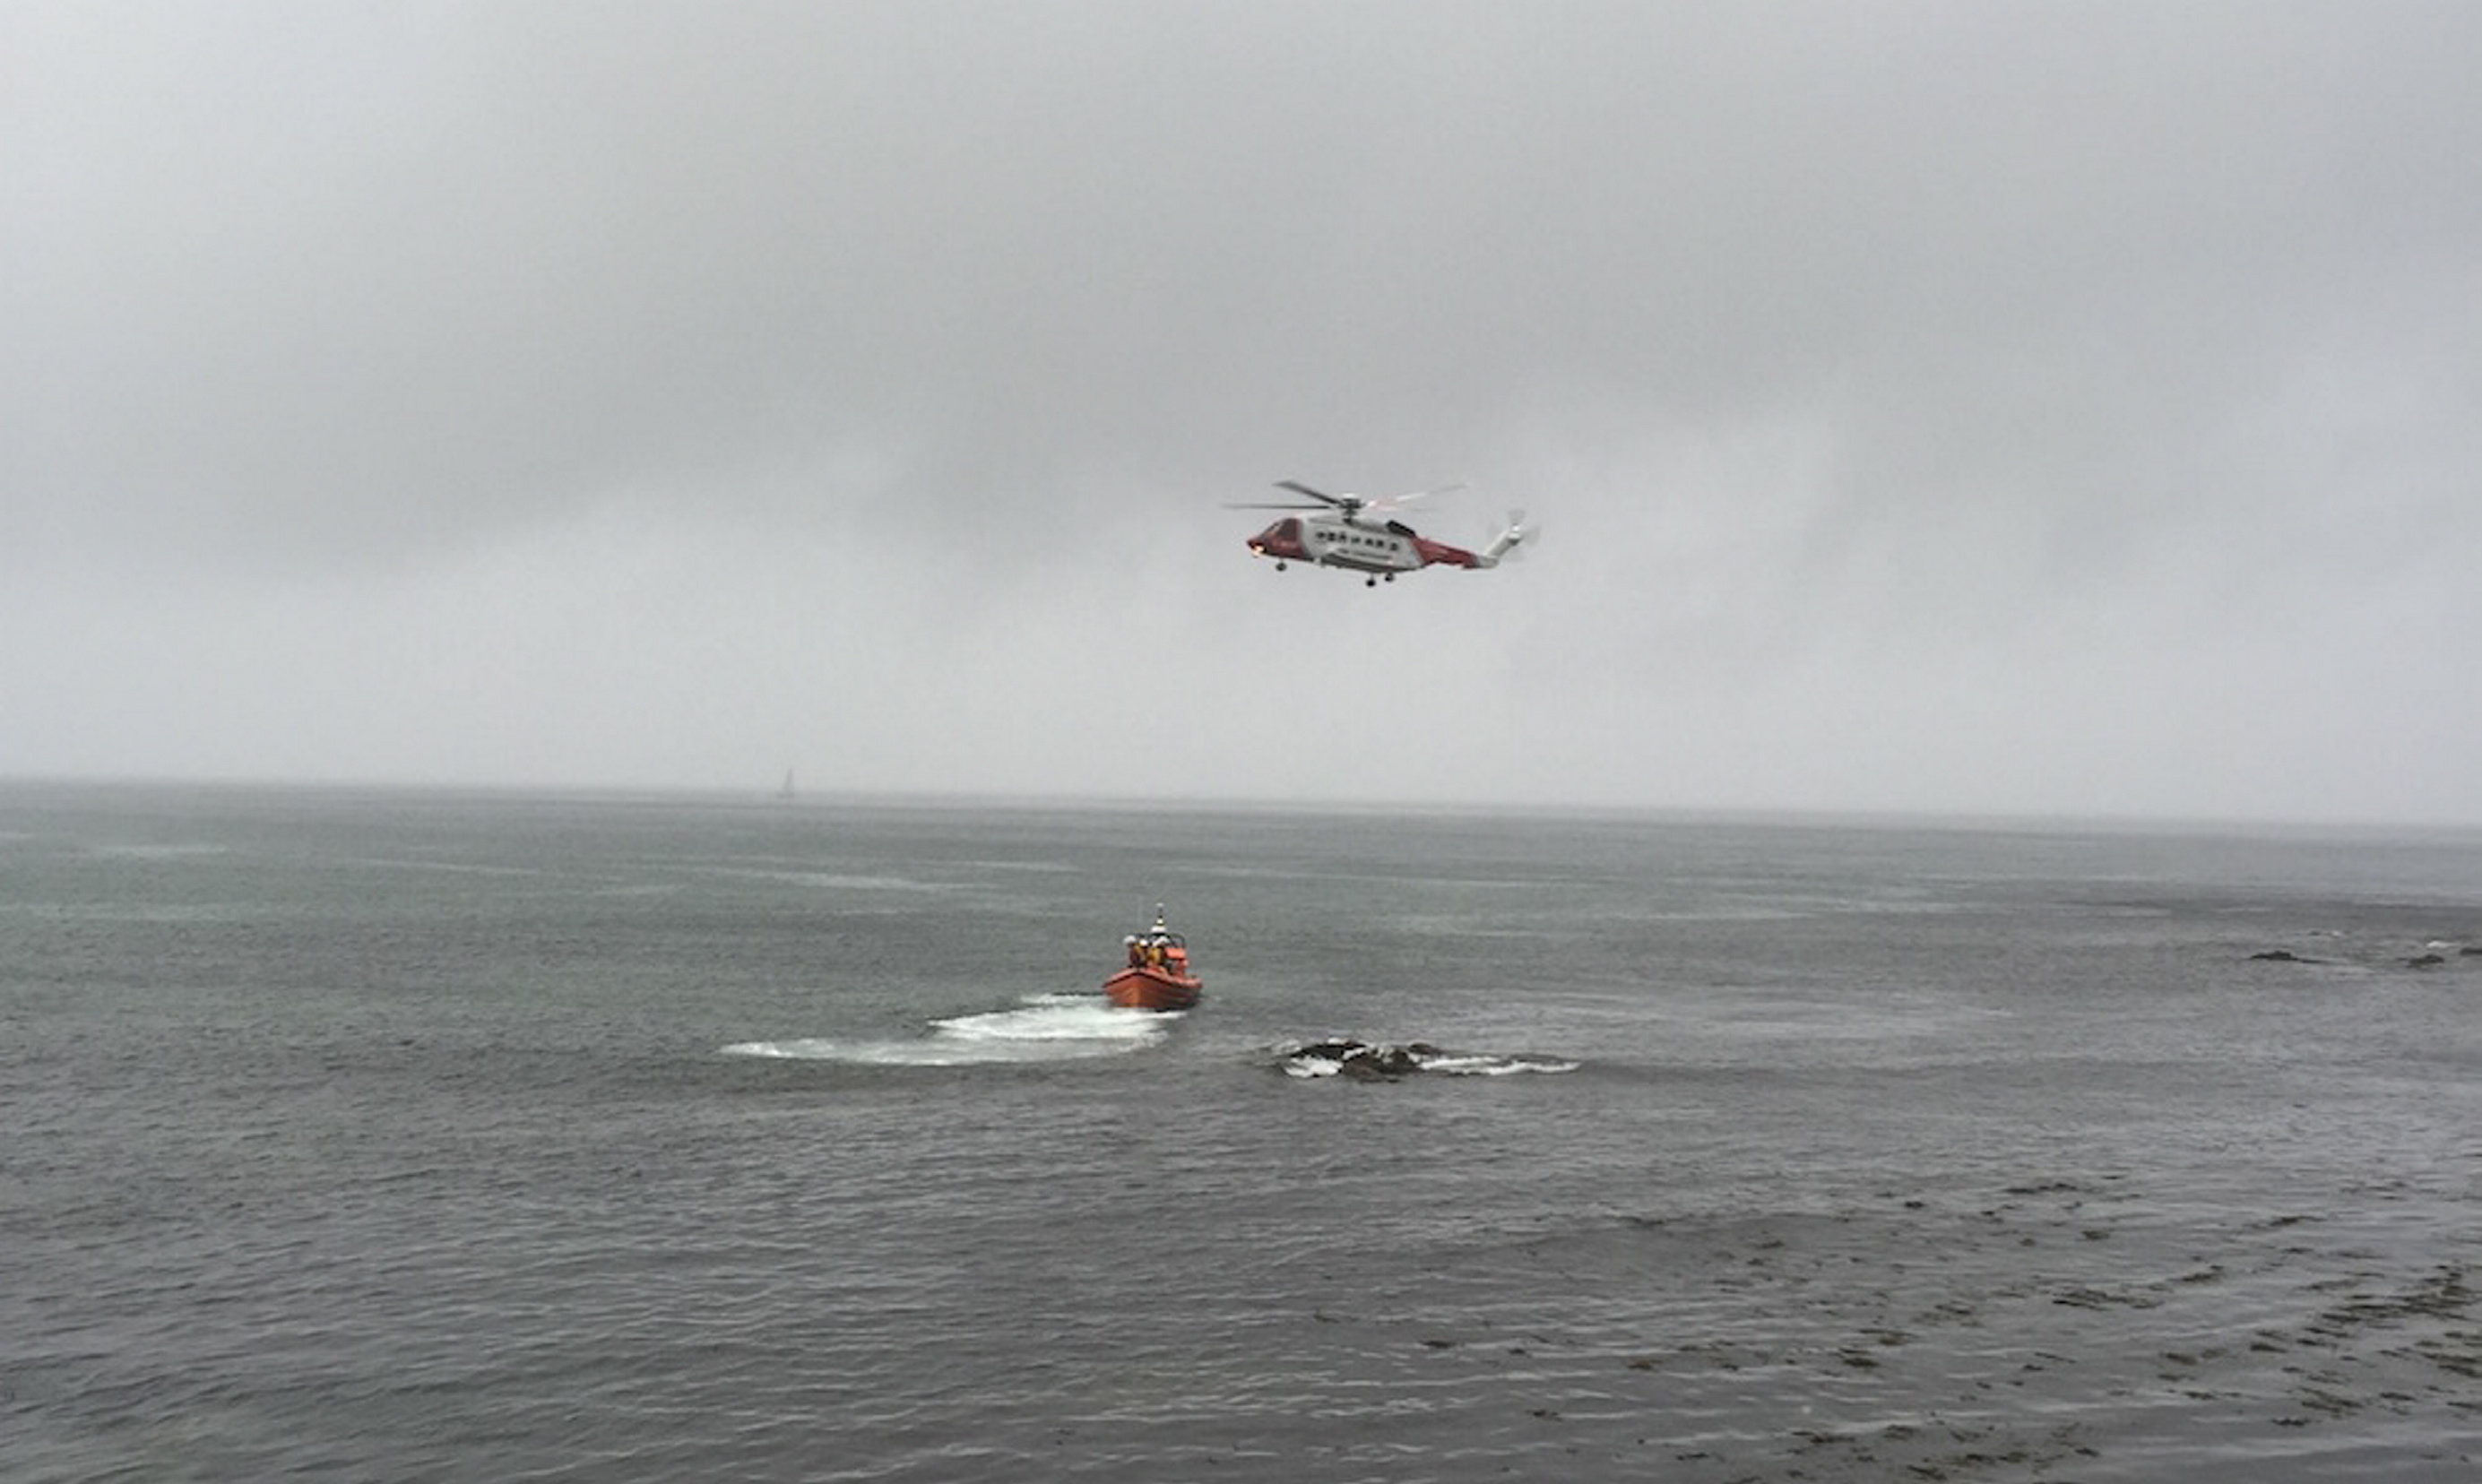 RNLI lifeboat Lydia Macdonald and Coastguard helicopter Rescue during a search following reports of a person in the water near the Union Road filling station in MacDuff.